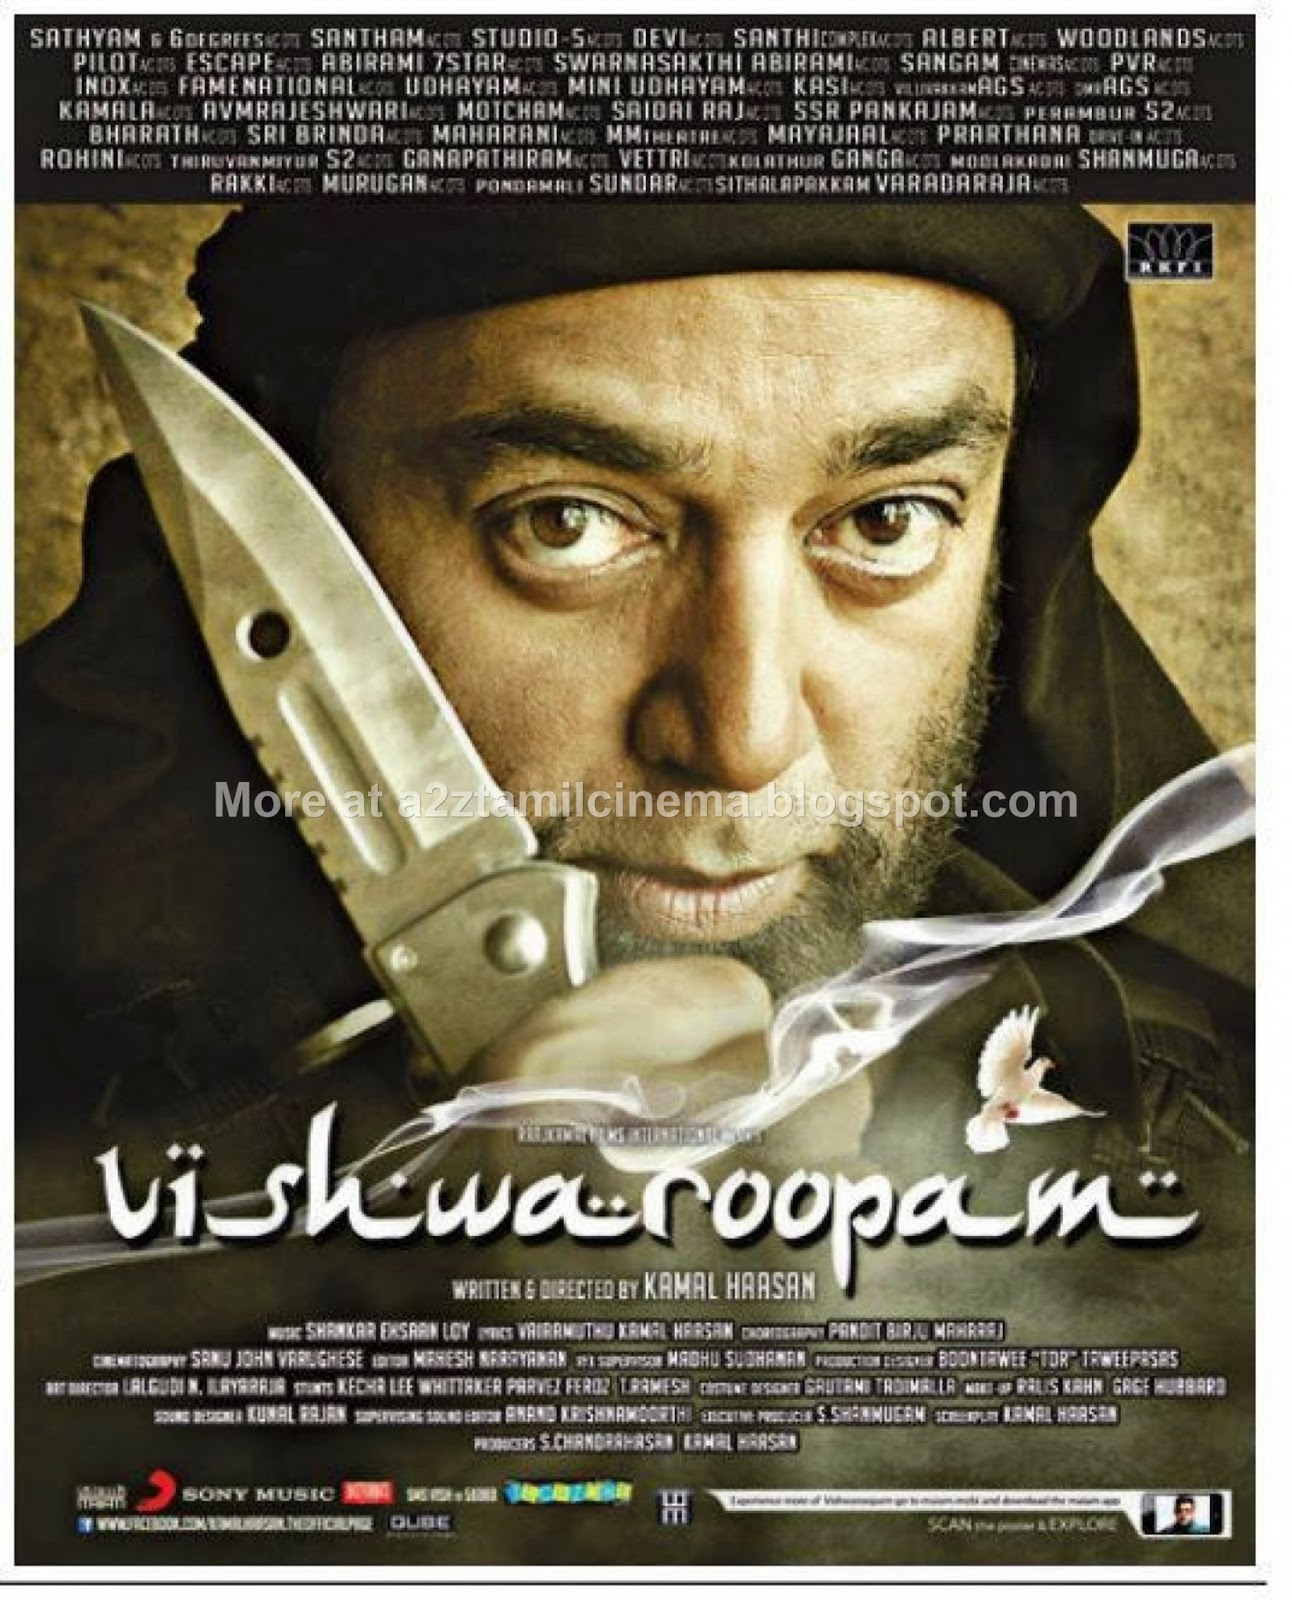 Vishwaroopam Posters Hd Wide Open Throttle Episode 1